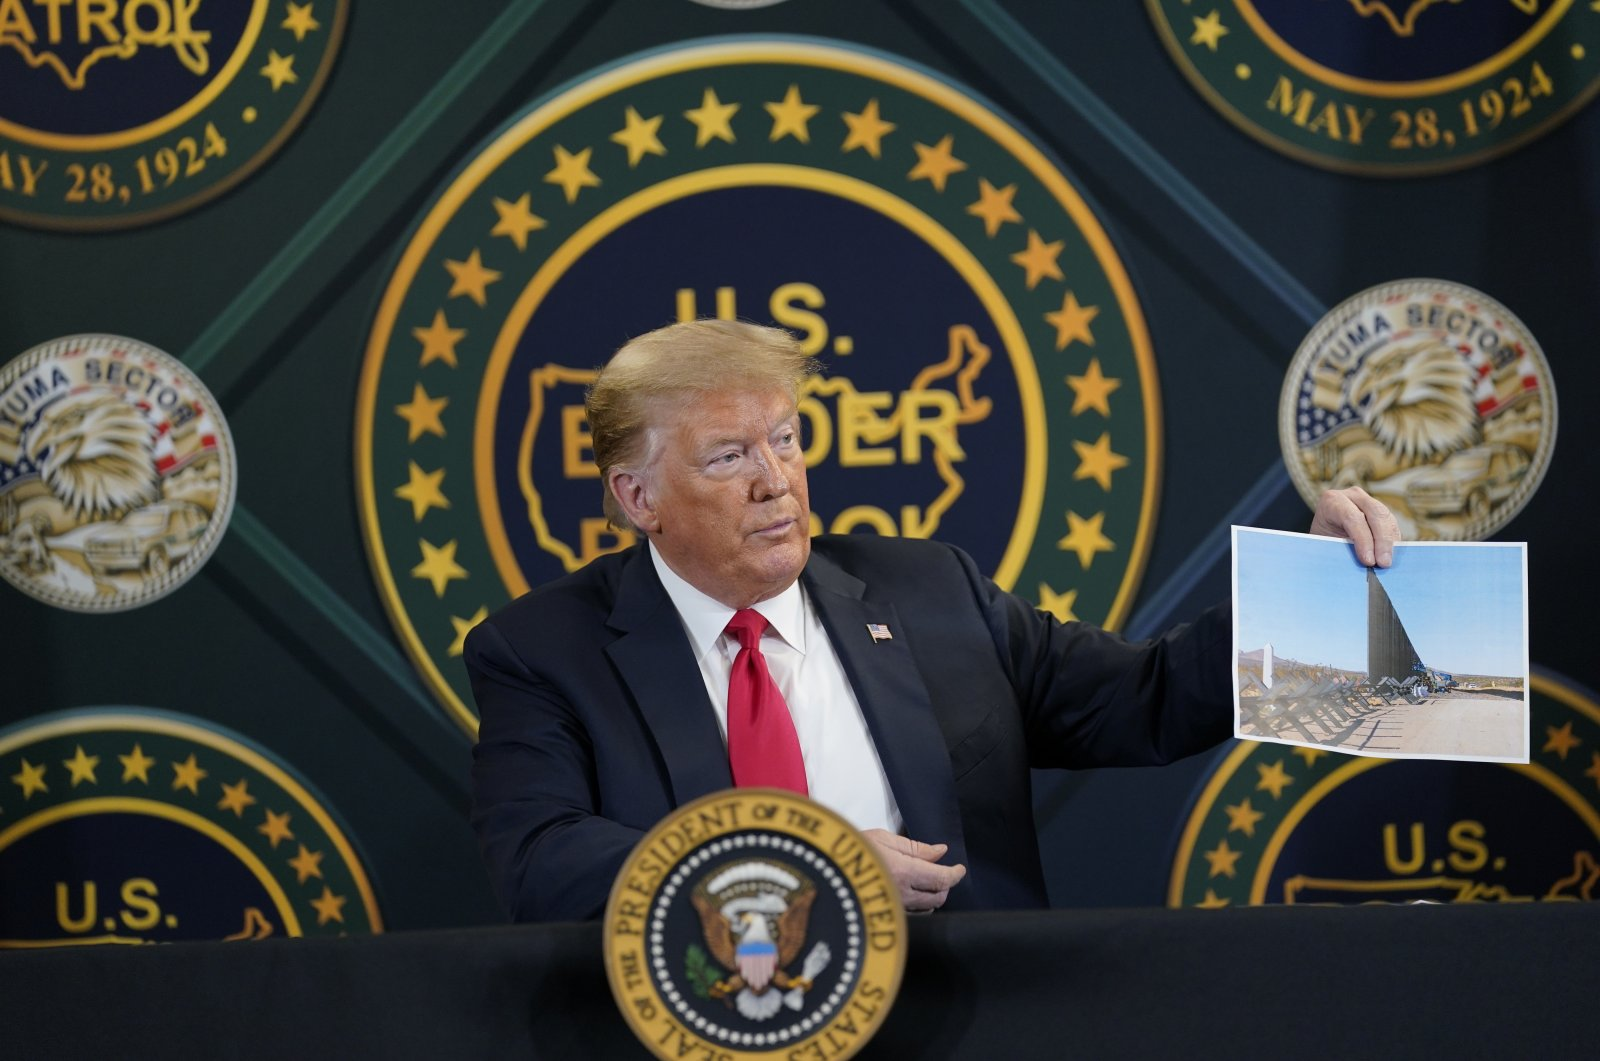 President Donald Trump holds an image of the U.S. border wall being built between the U.S. and Mexico as he participates in a border security briefing at the United States Border Patrol Yuma Station in Yuma, Arizona, June 23, 2020. (AP Photo)